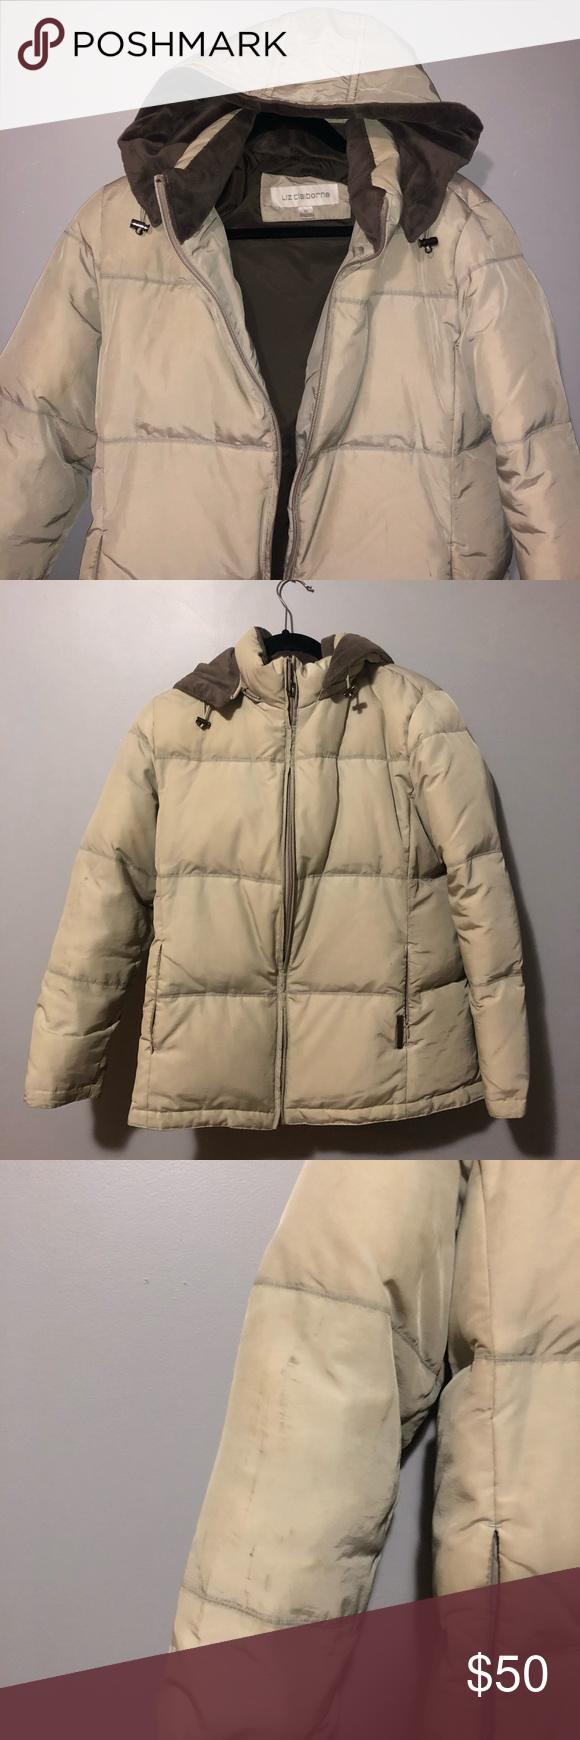 Liz Claiborne Jacket In Good Condition Just Needs A Wash Marks As Shown Should Come Off Warm Winter Jacket Liz Warm Winter Jackets Winter Jackets Jackets [ 1740 x 580 Pixel ]